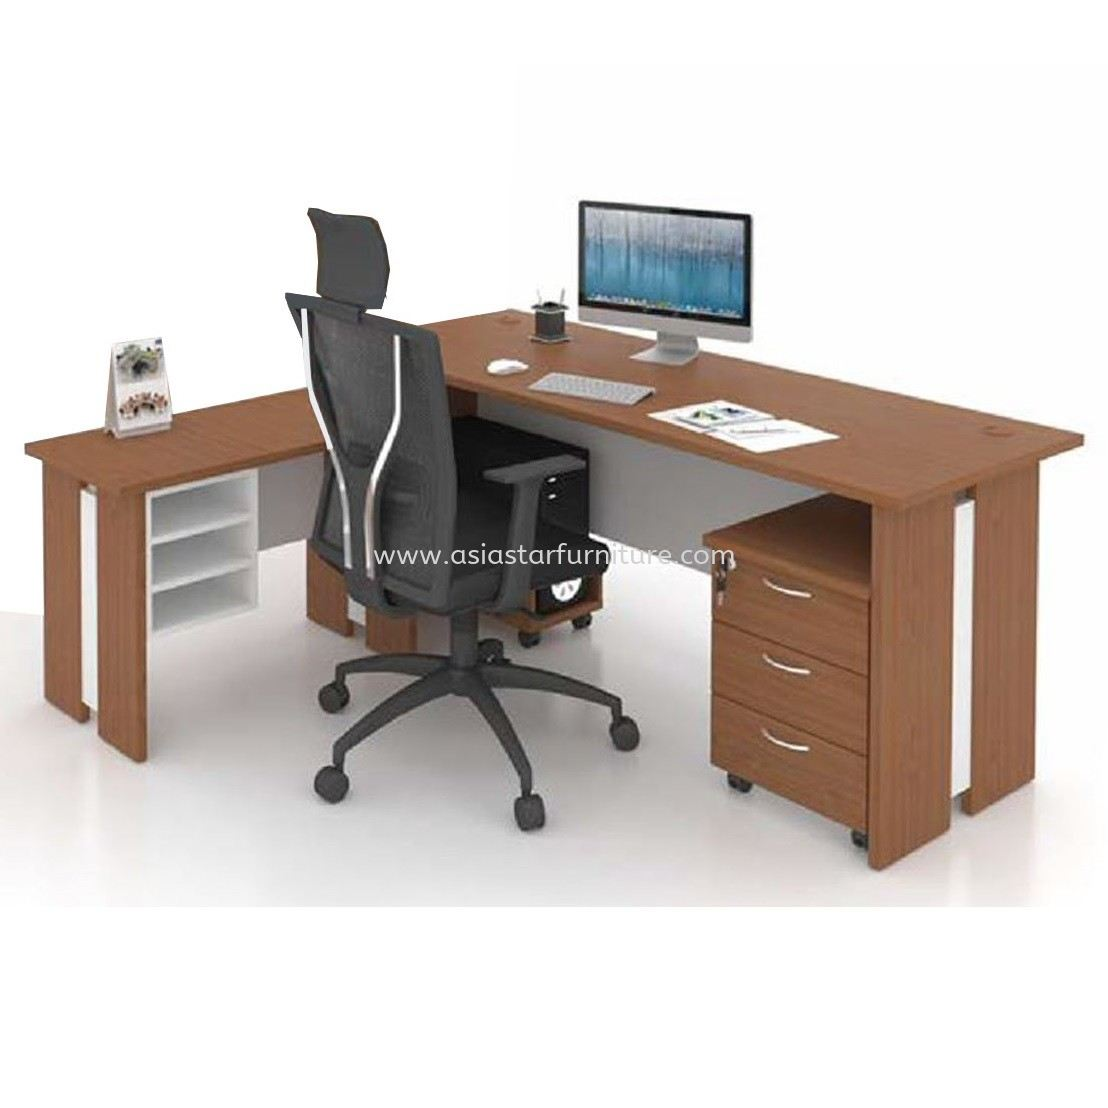 FAMAH 6' OFFICE TABLE C/W SIDE TABLE & DRAWER 3D SET (COLOR CHERRY) - office table set Sri Petaling | office table set Seri Kembangan | office table set Sungai Besi | office table set Balakong